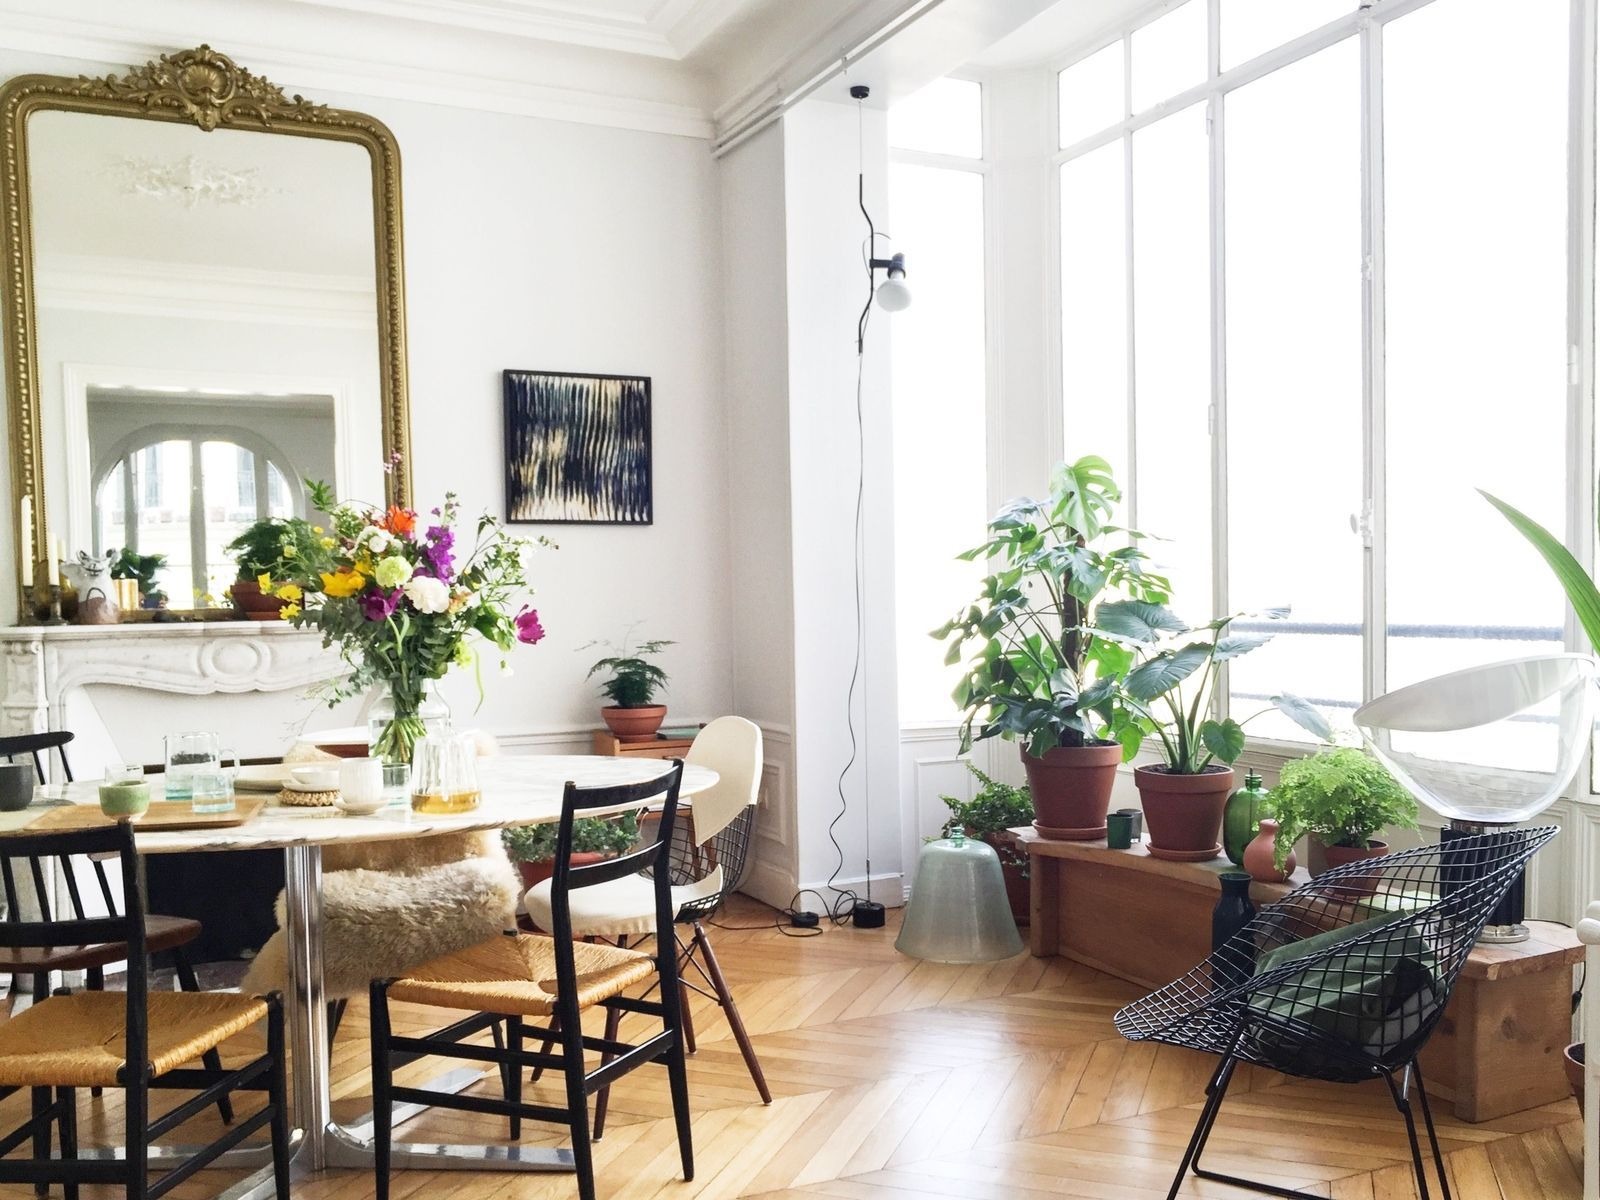 7 french interior design rules to live by for an effortlessly chic lifestyle consider the french lifestyle